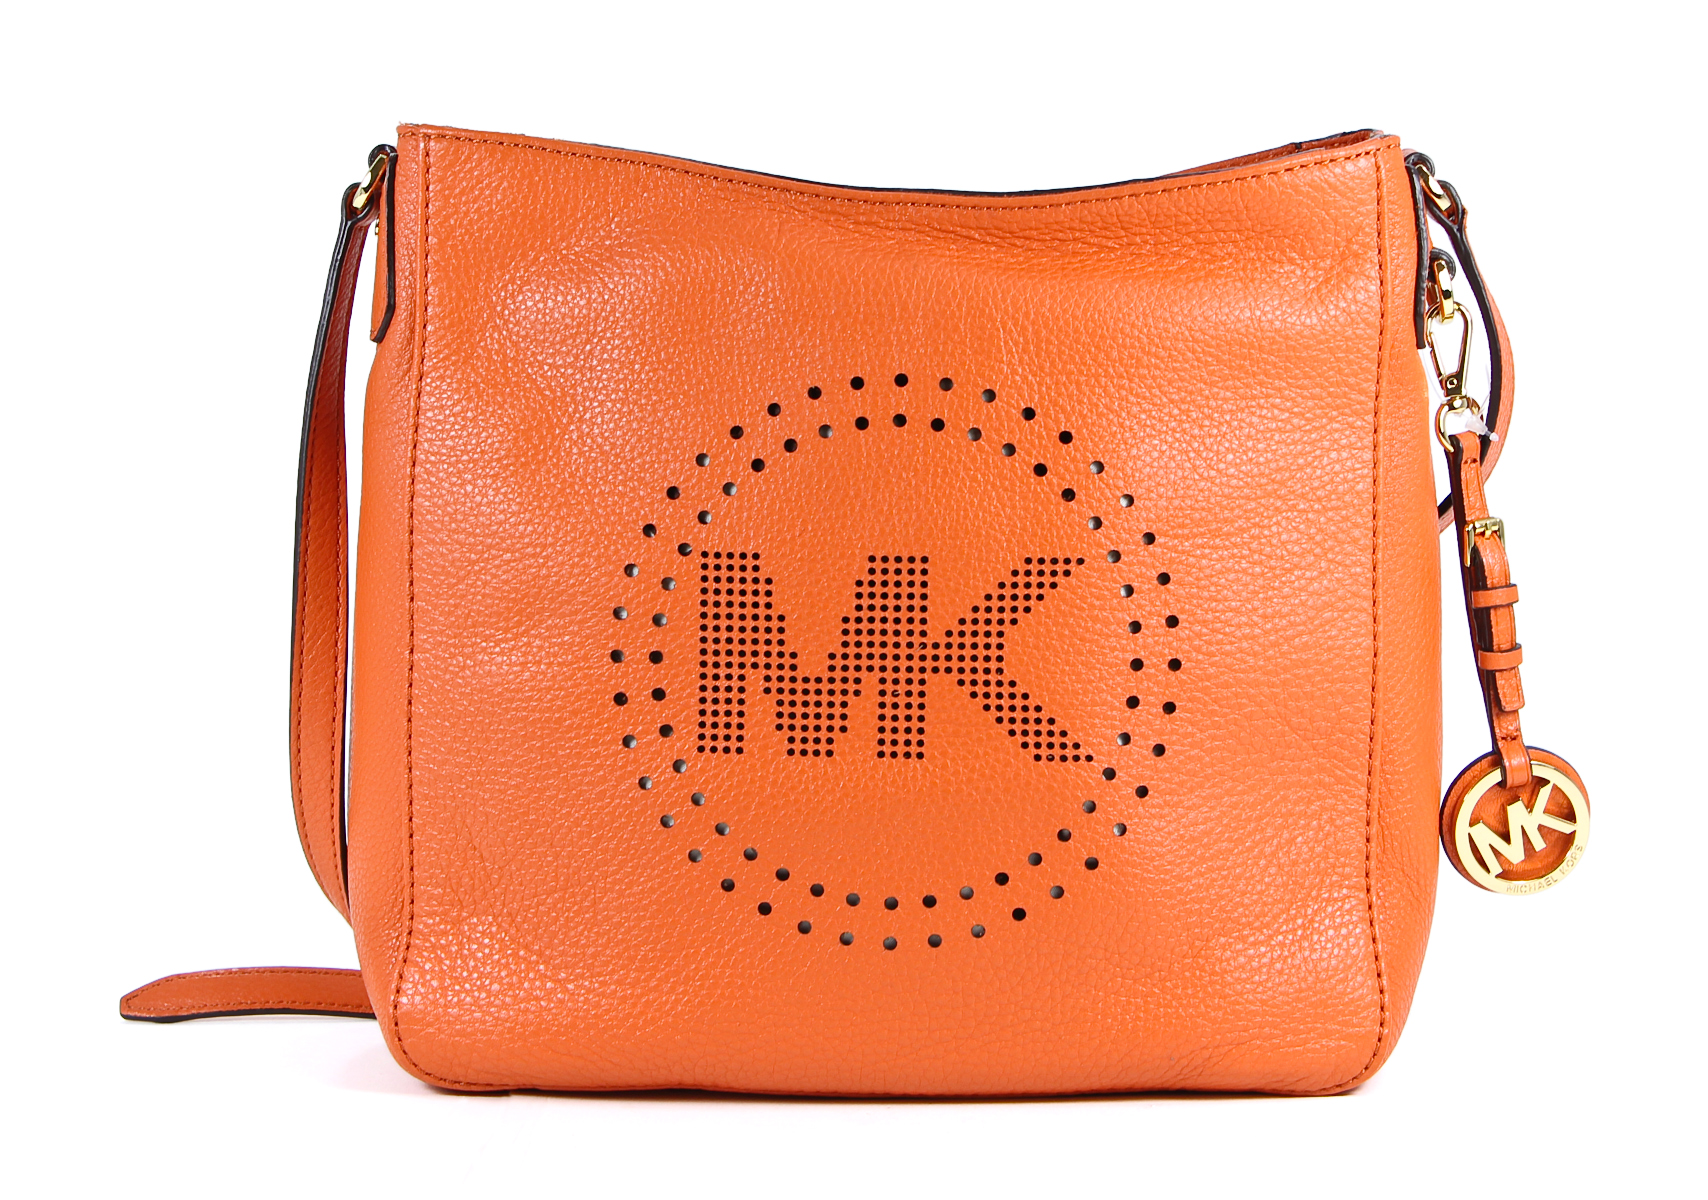 Michael Kors Perforated Leather Large Messenger Crossbody Bag 47